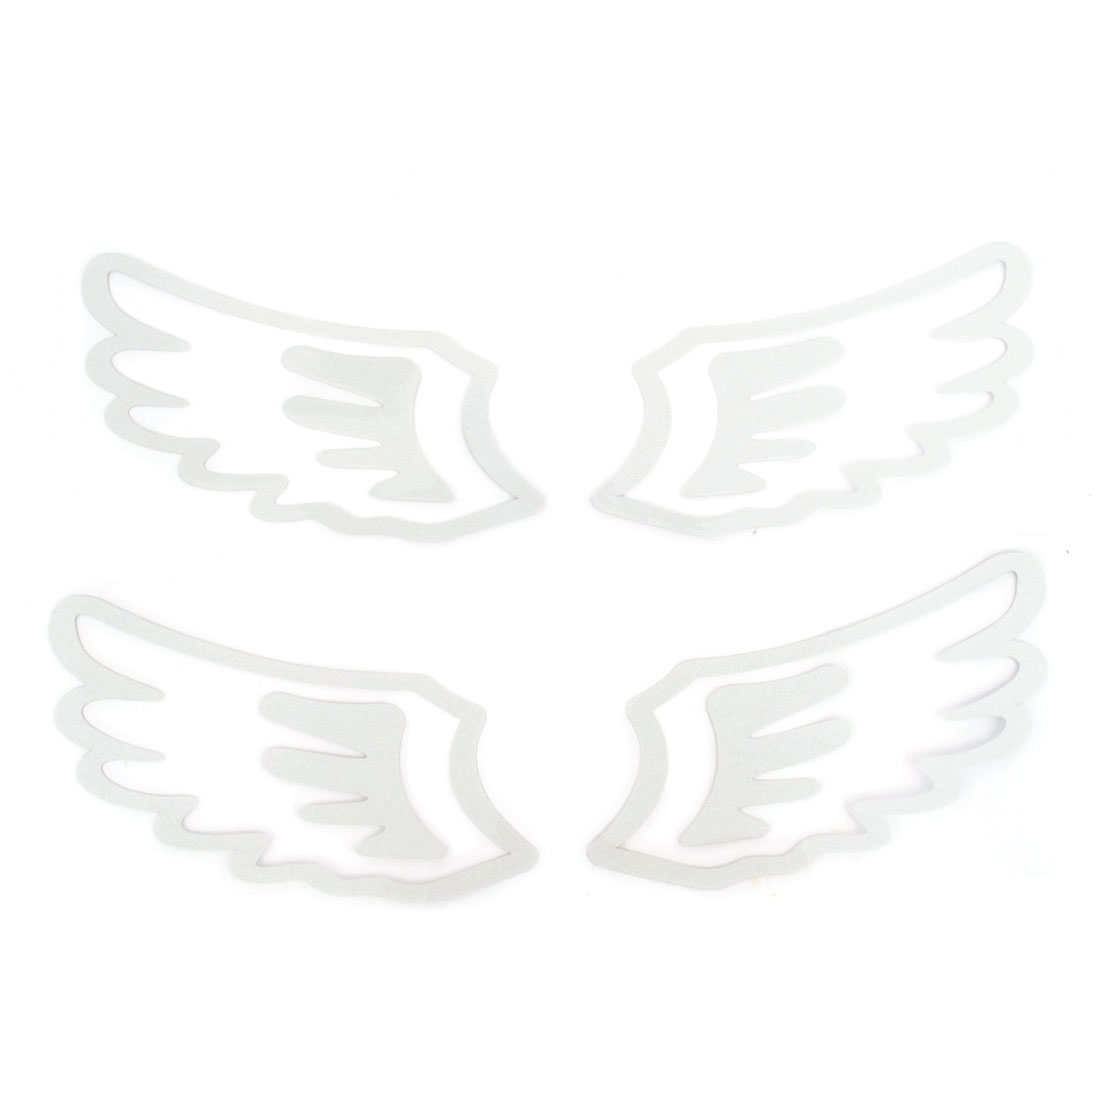 Pair Silver Tone Paper Angel Wings Adhesive Car Safety Reflective Sticker